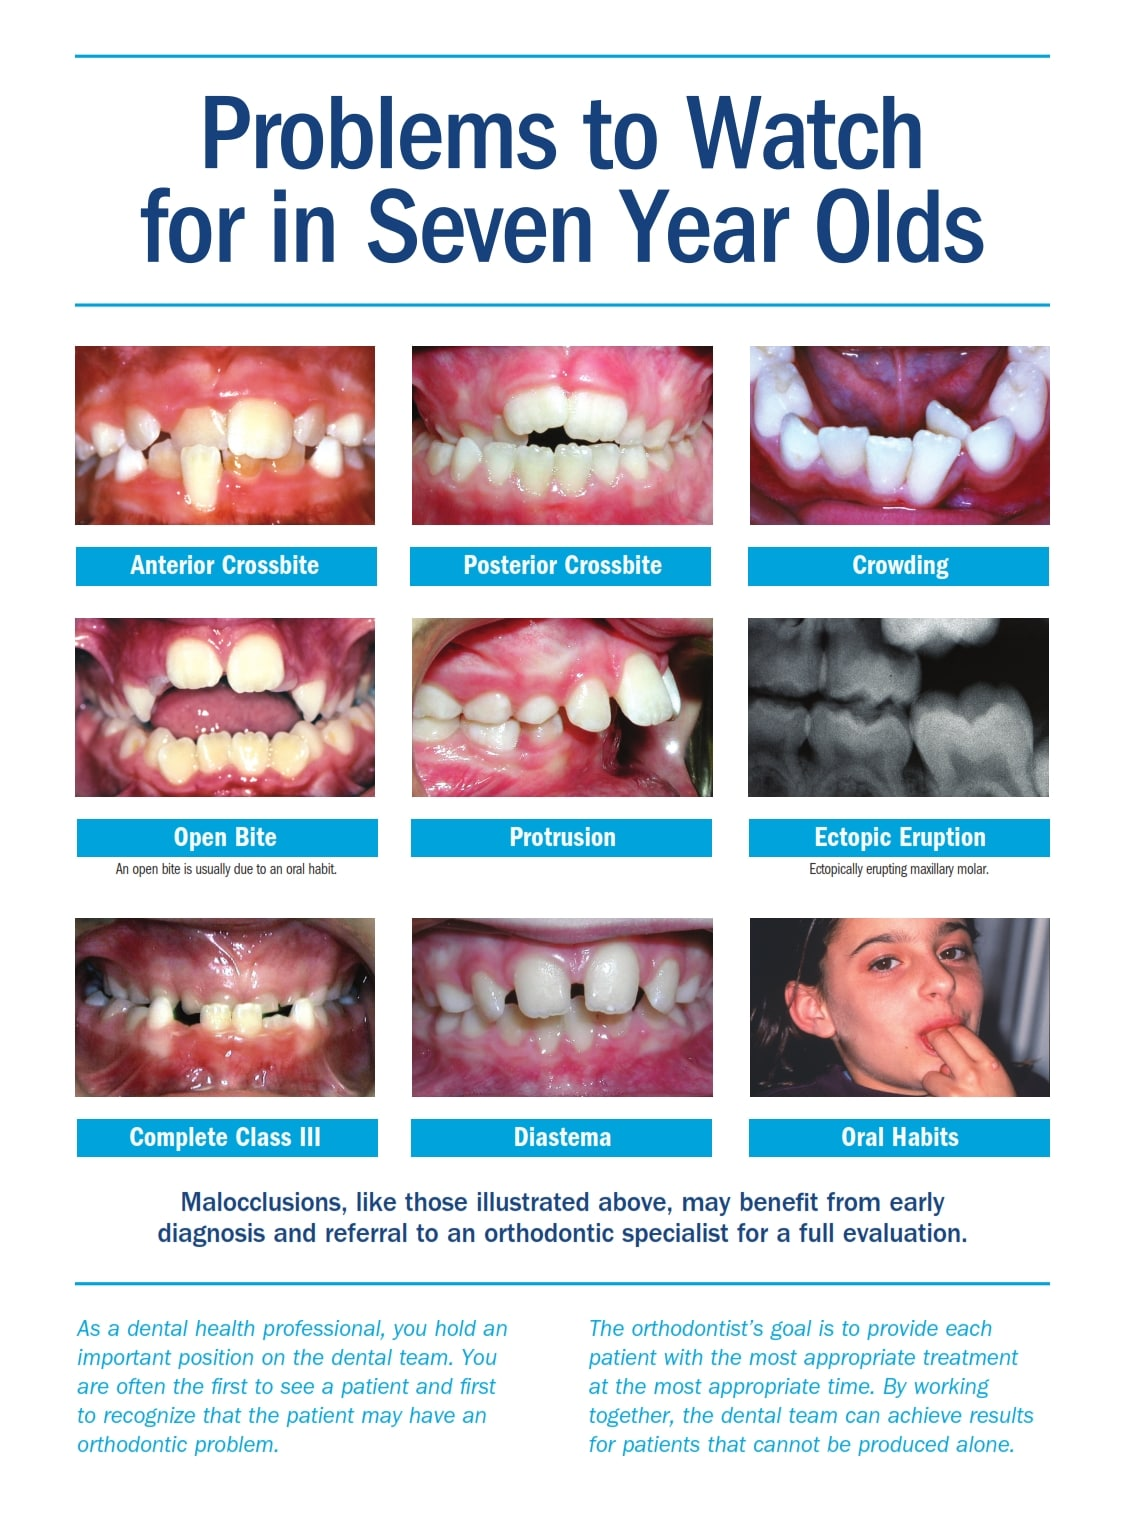 Problems to Watch for in Seven Year Olds children First Orthodontic Check-Ups No Later than Age 7 PTWF 7yr Olds 14 hl2 002 - Queens NY Orthodontist for Invisalign and Clear Braces